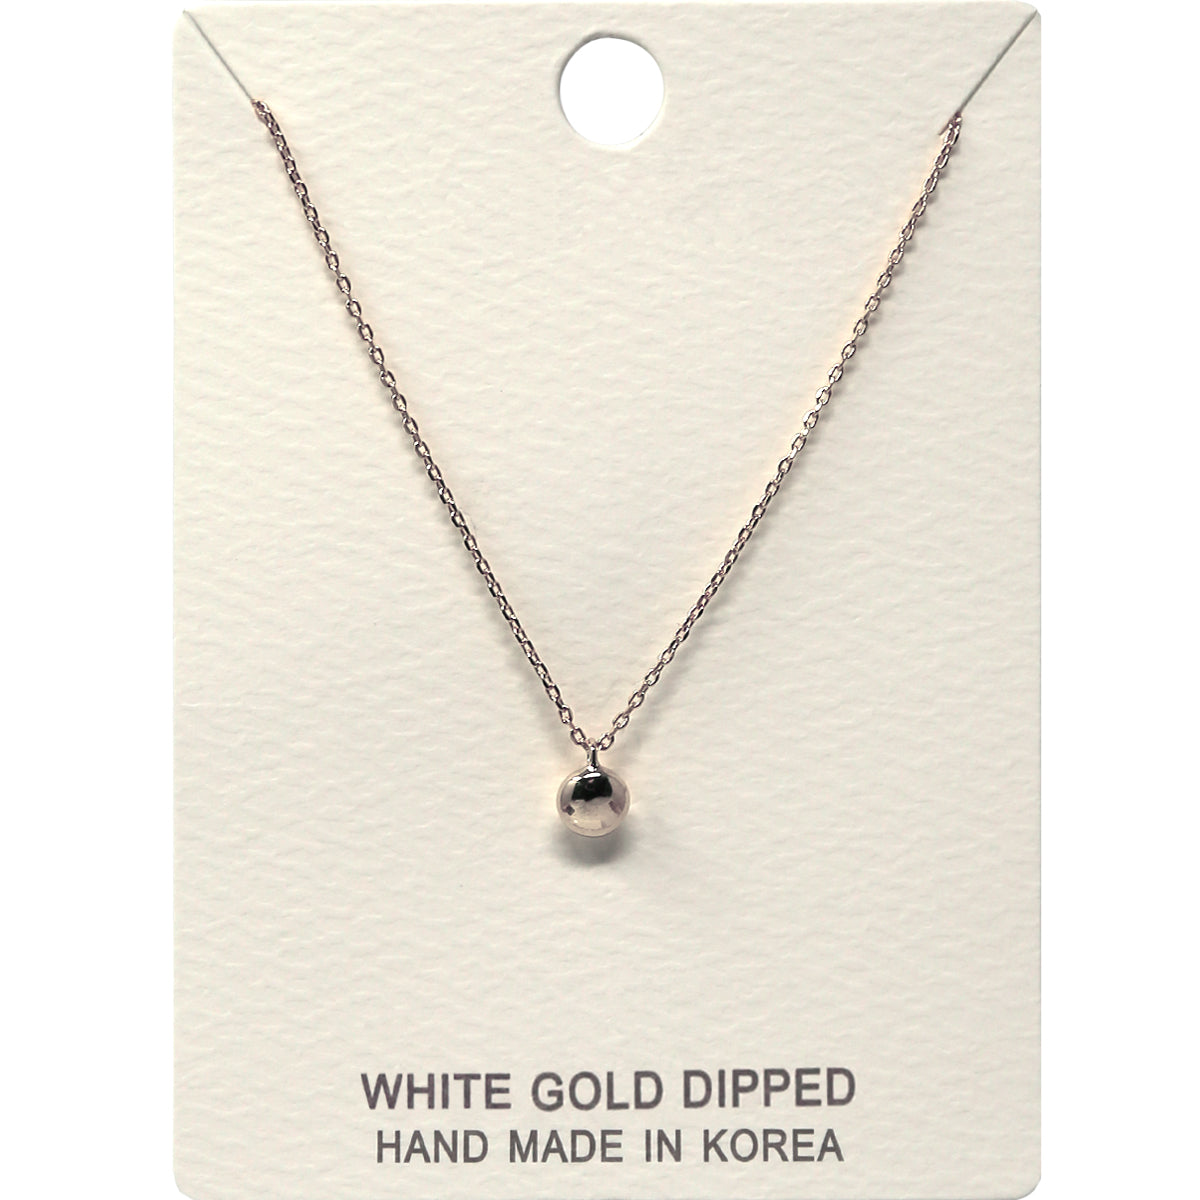 Puffed Disc Pendant Short Necklace (Small)